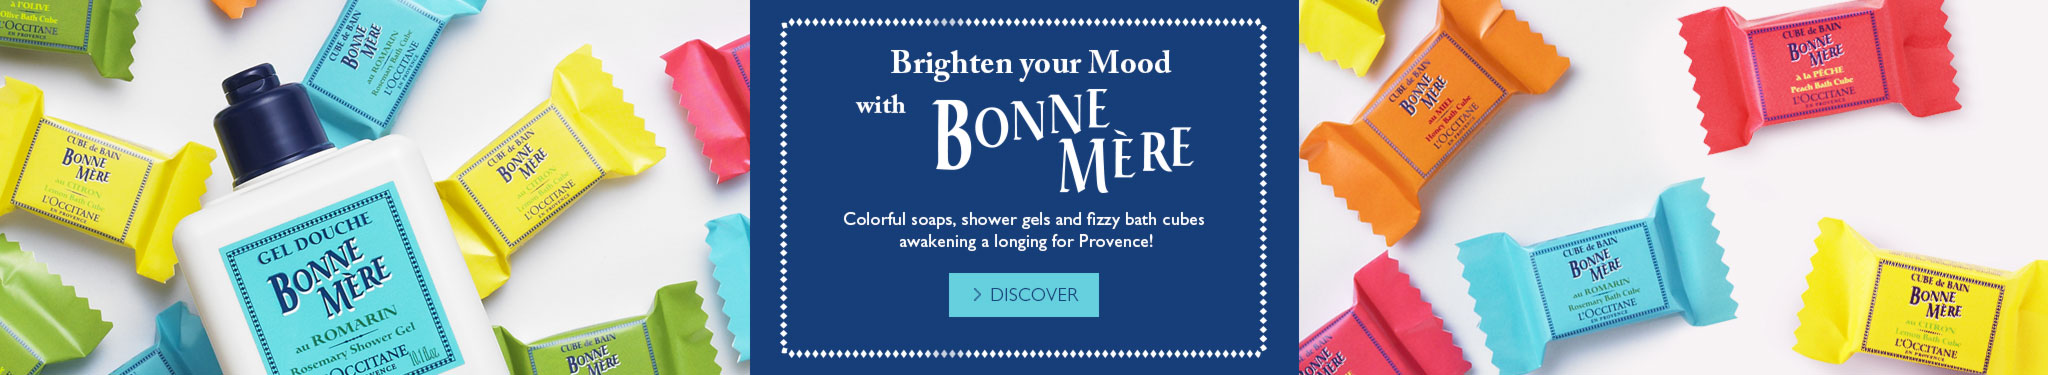 Brighten your mood with Bonne Mere